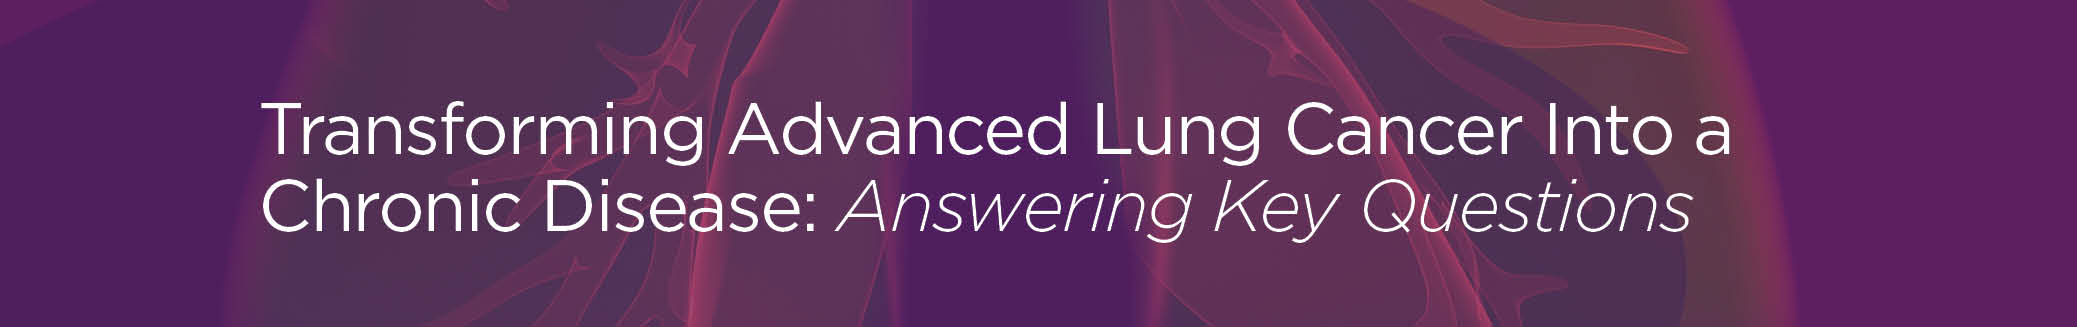 Transforming Advanced Lung Cancer Into a Chronic Disease: Answering Key Questions - priME Oncology